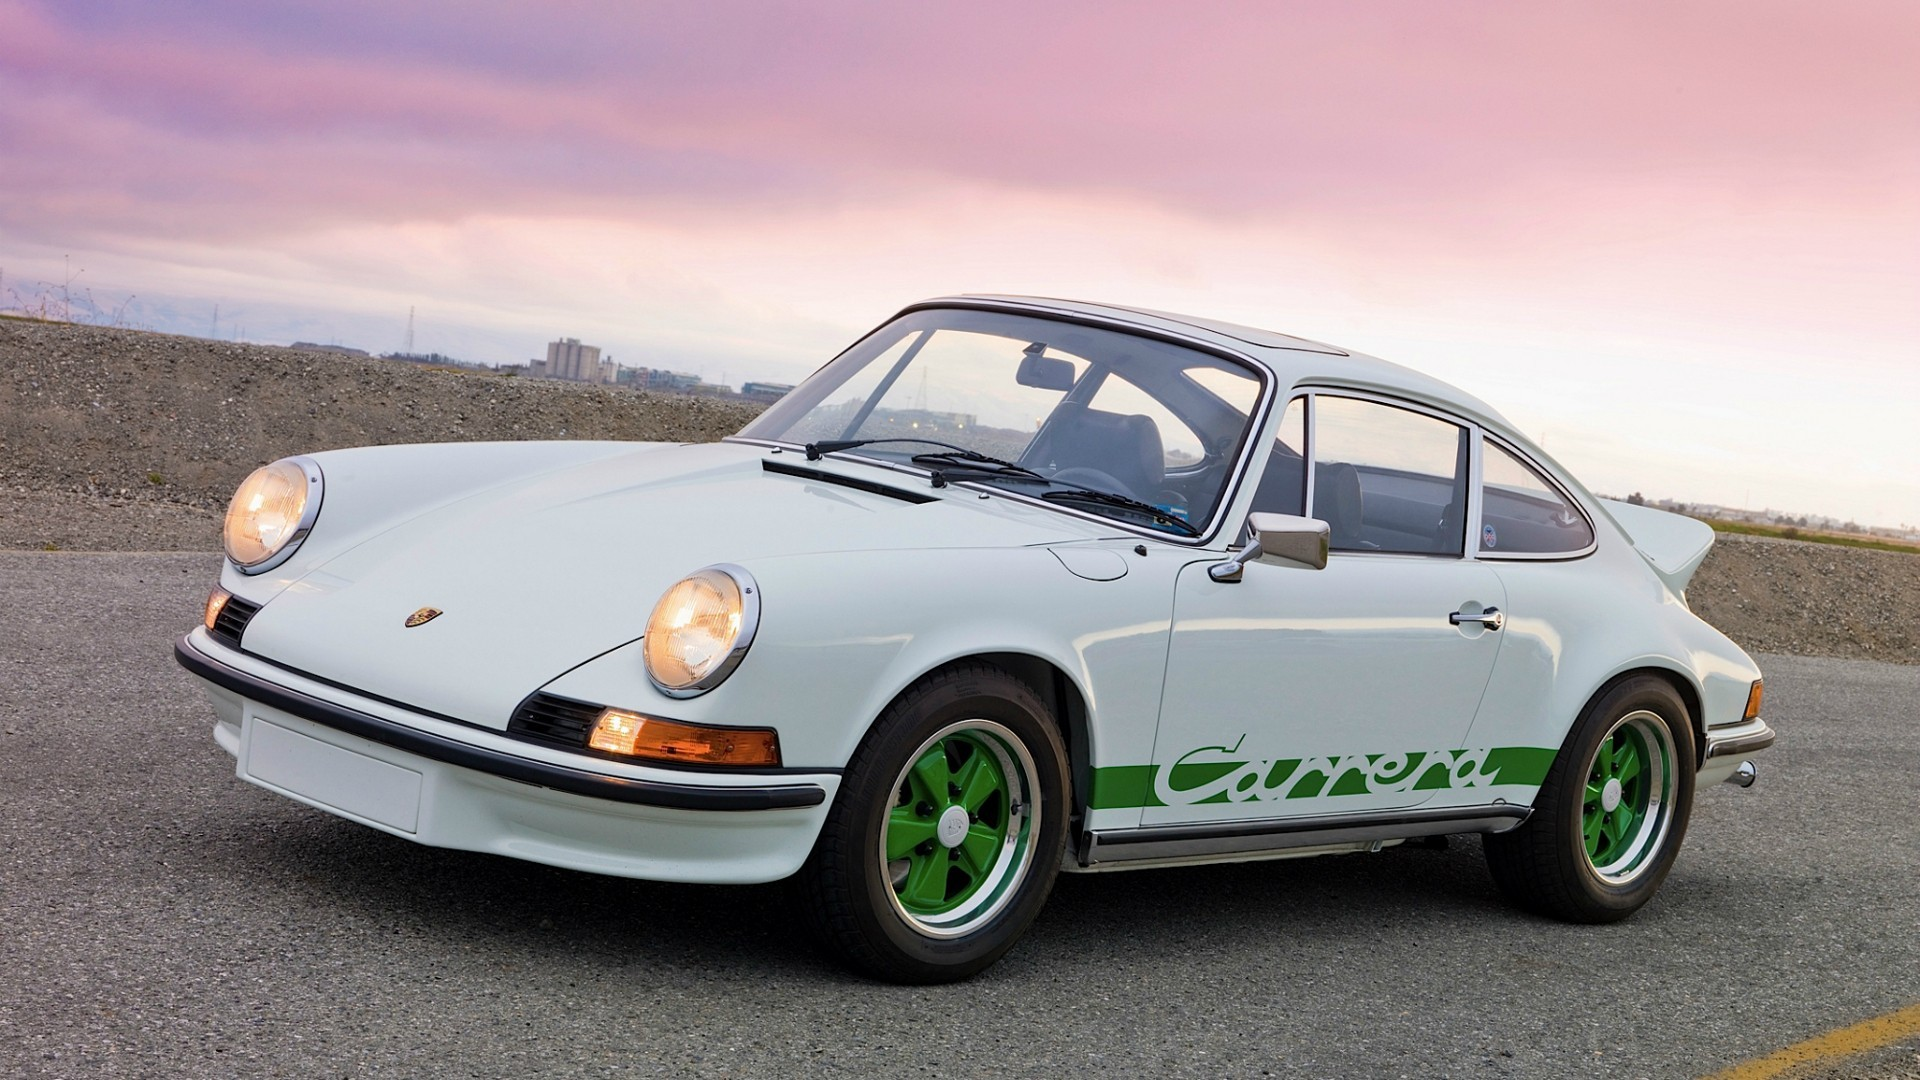 Porsche 911 classic cars headlights carrera rs wallpaper 1920x1080